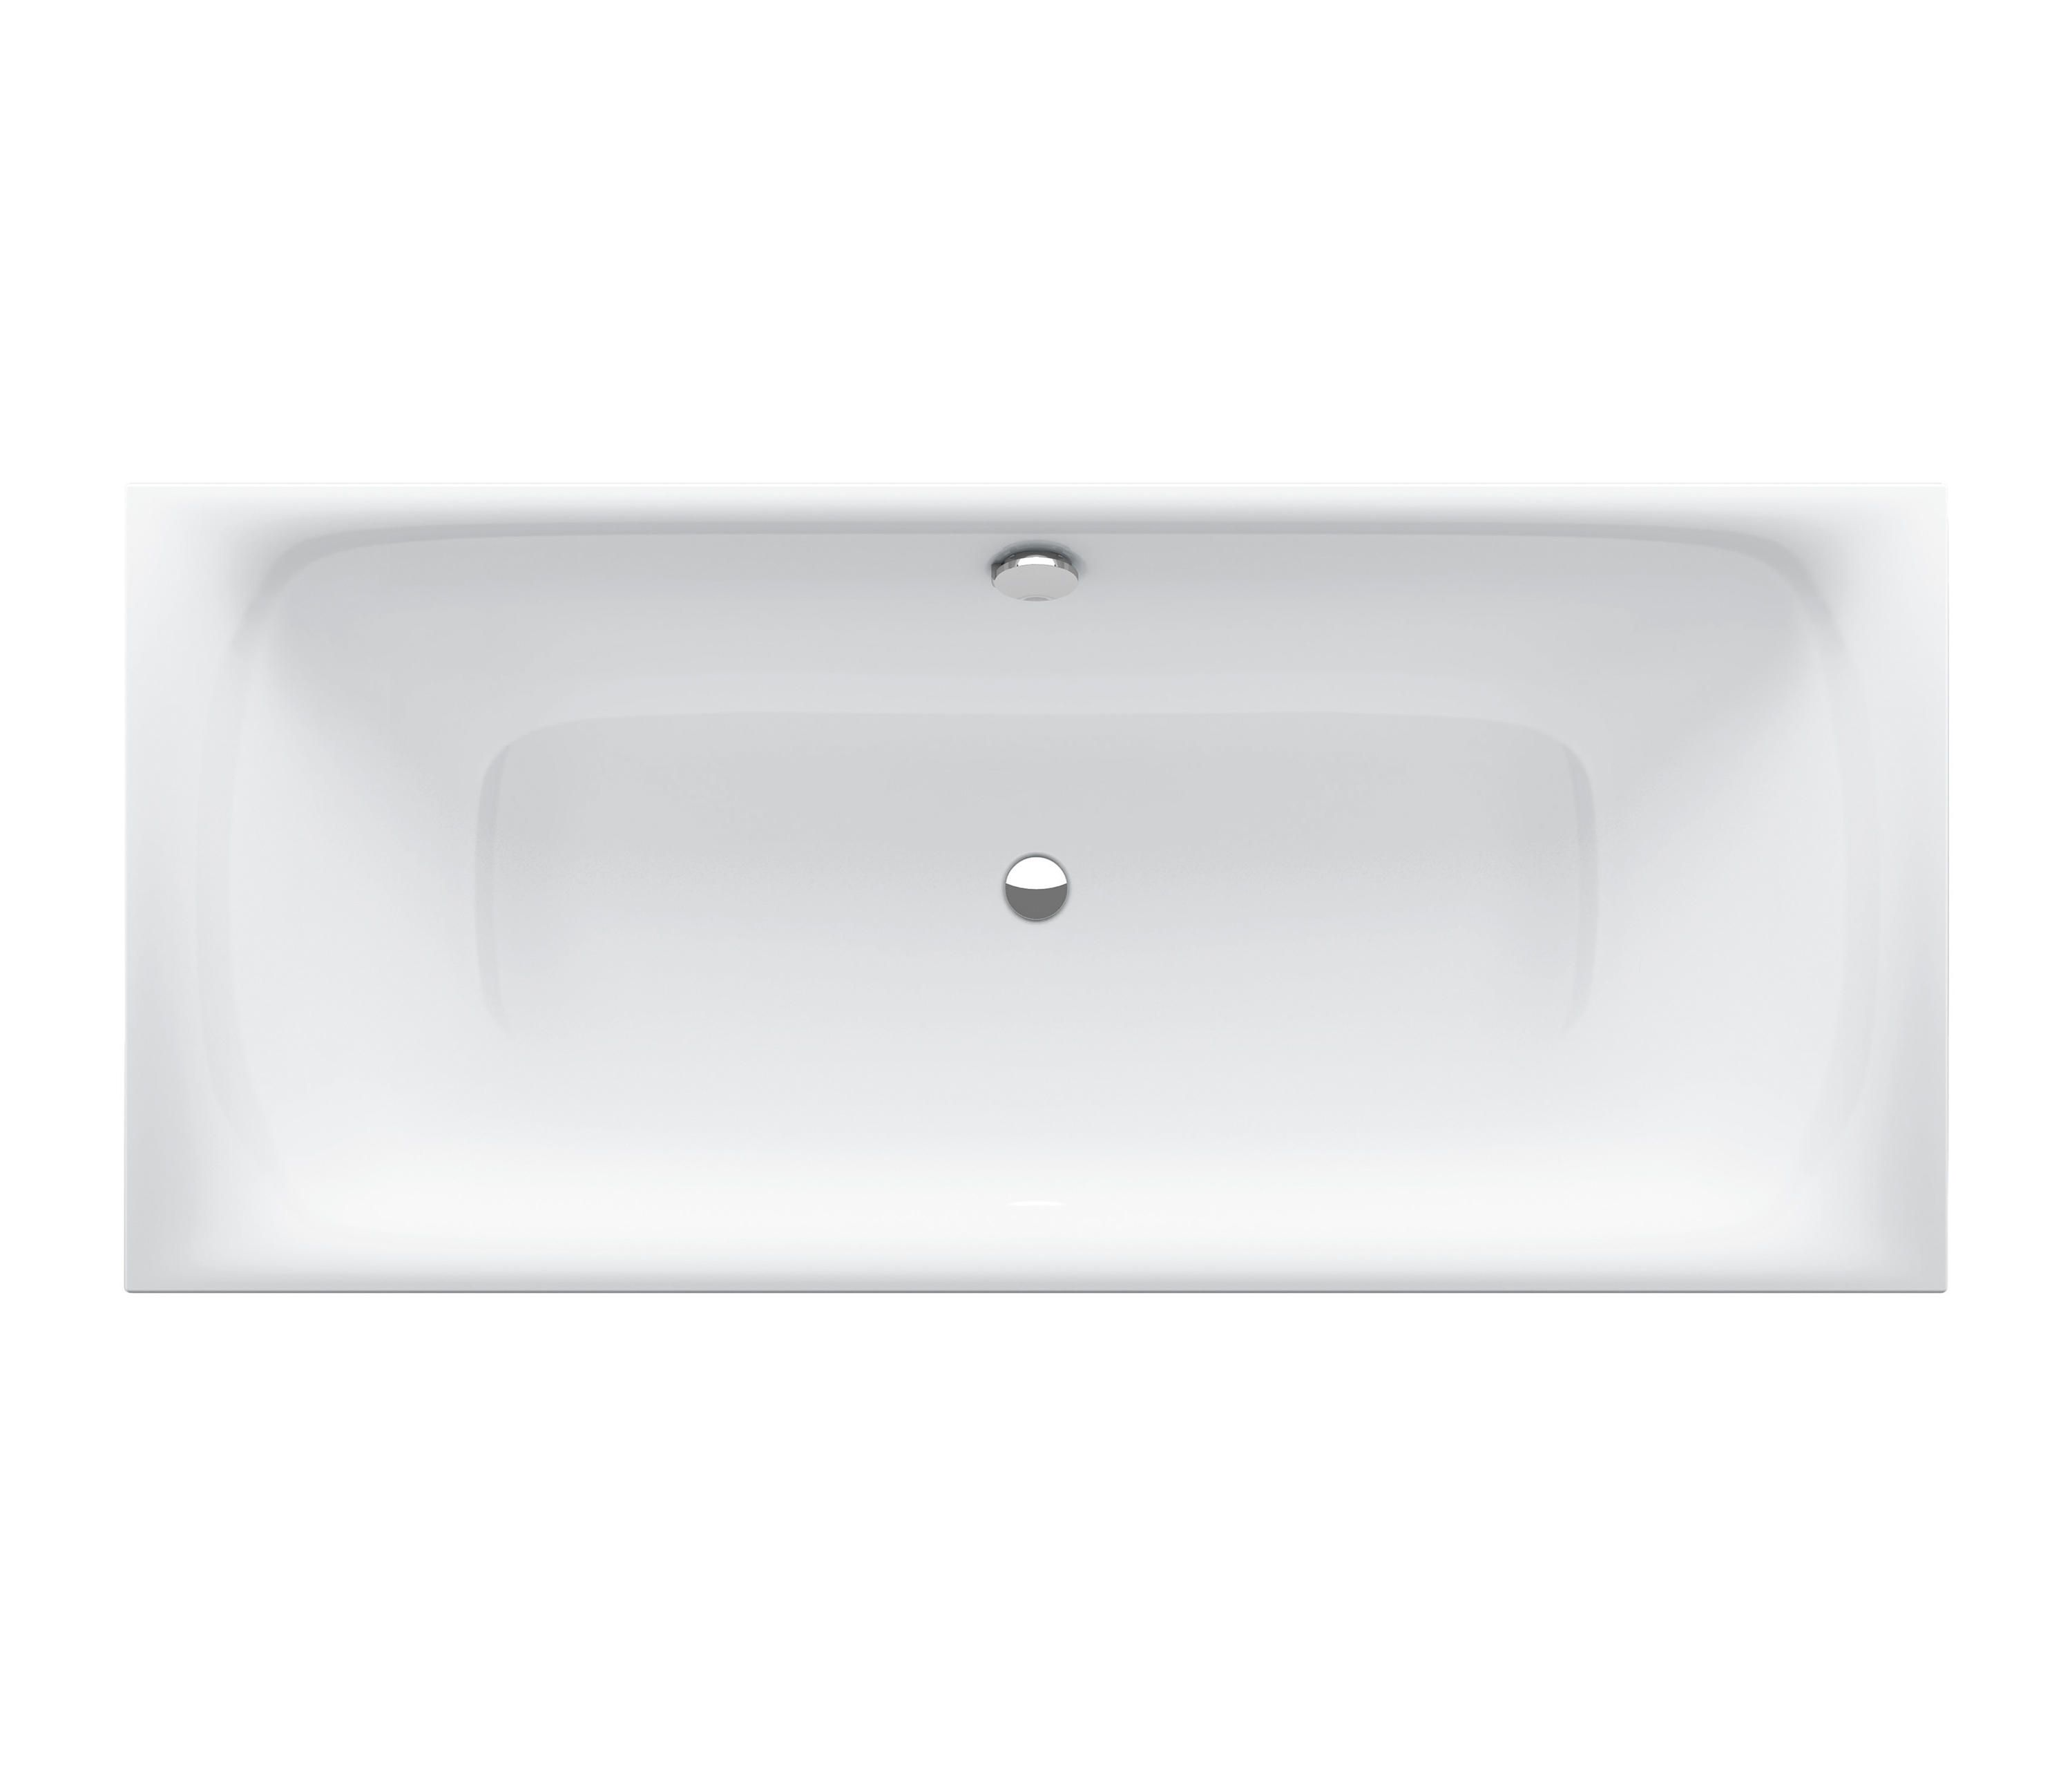 BETTELUX BATH - Designer Built-in bathtubs from Bette ✓ all information ✓ high-resolution images ✓ CADs ✓ catalogues ✓ contact information ✓..